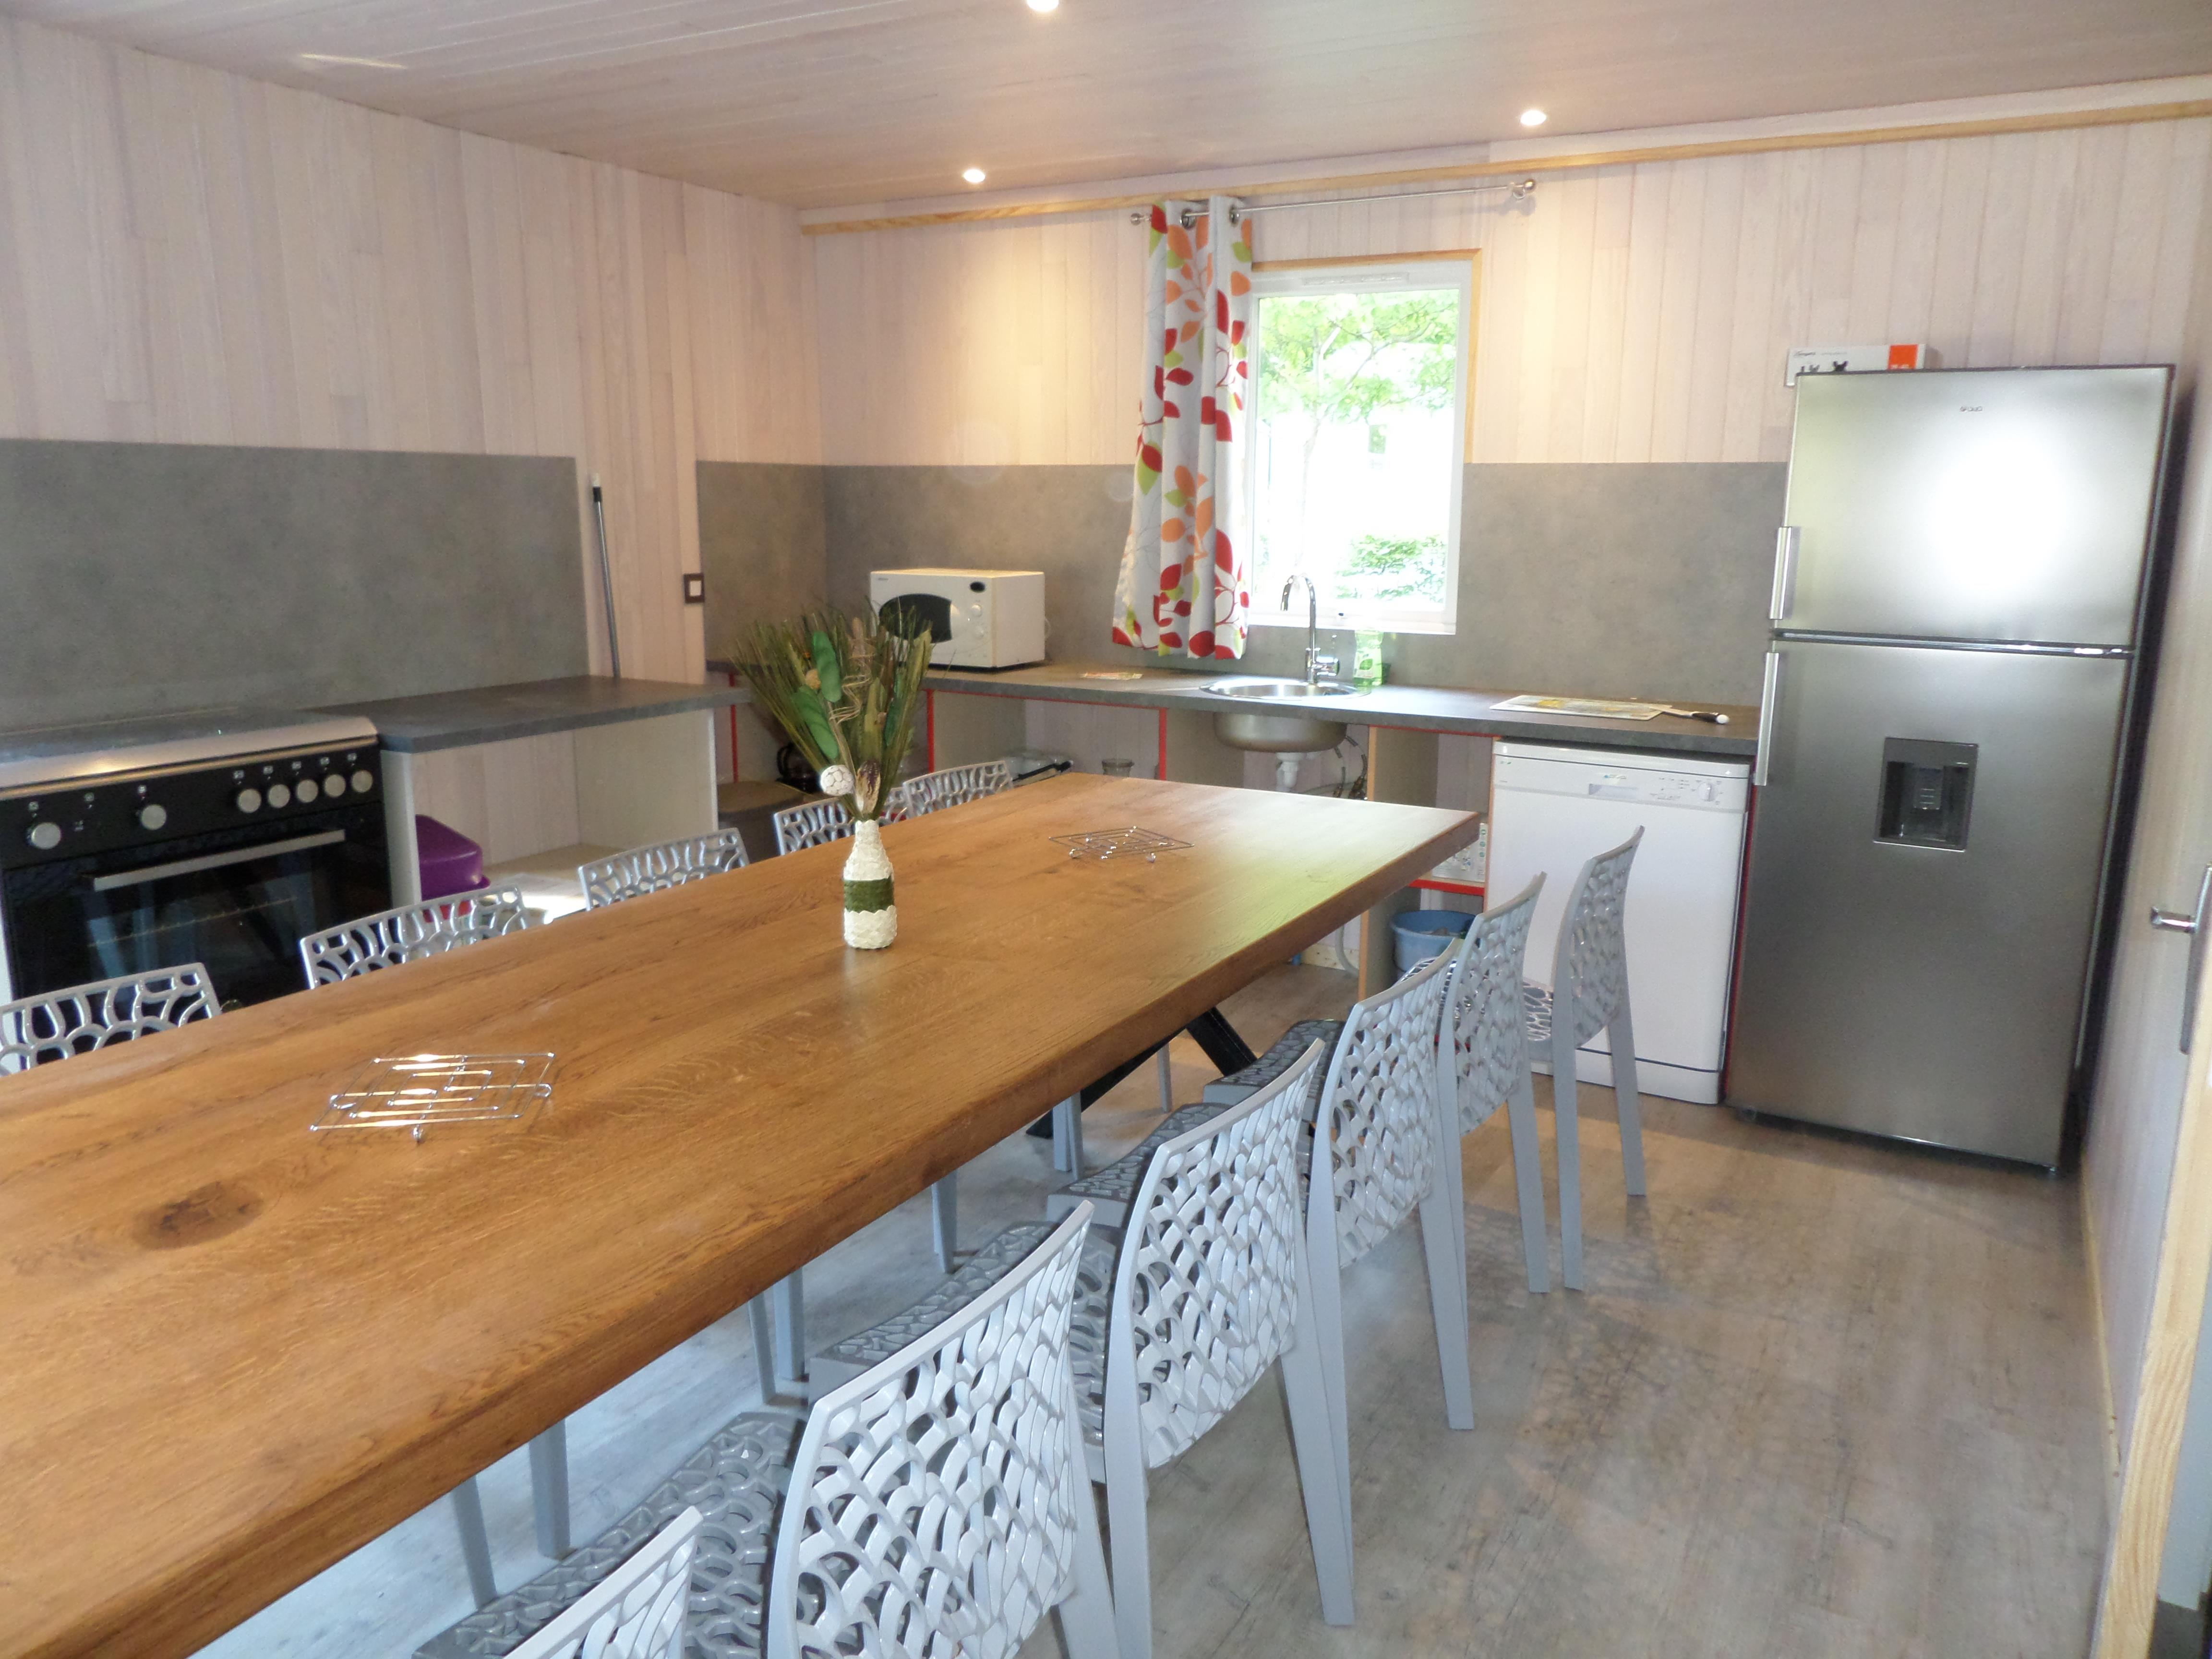 Huuraccommodatie - Chalet Comfort 22+43 M² - 12 Pers. - Le Bois Guillaume